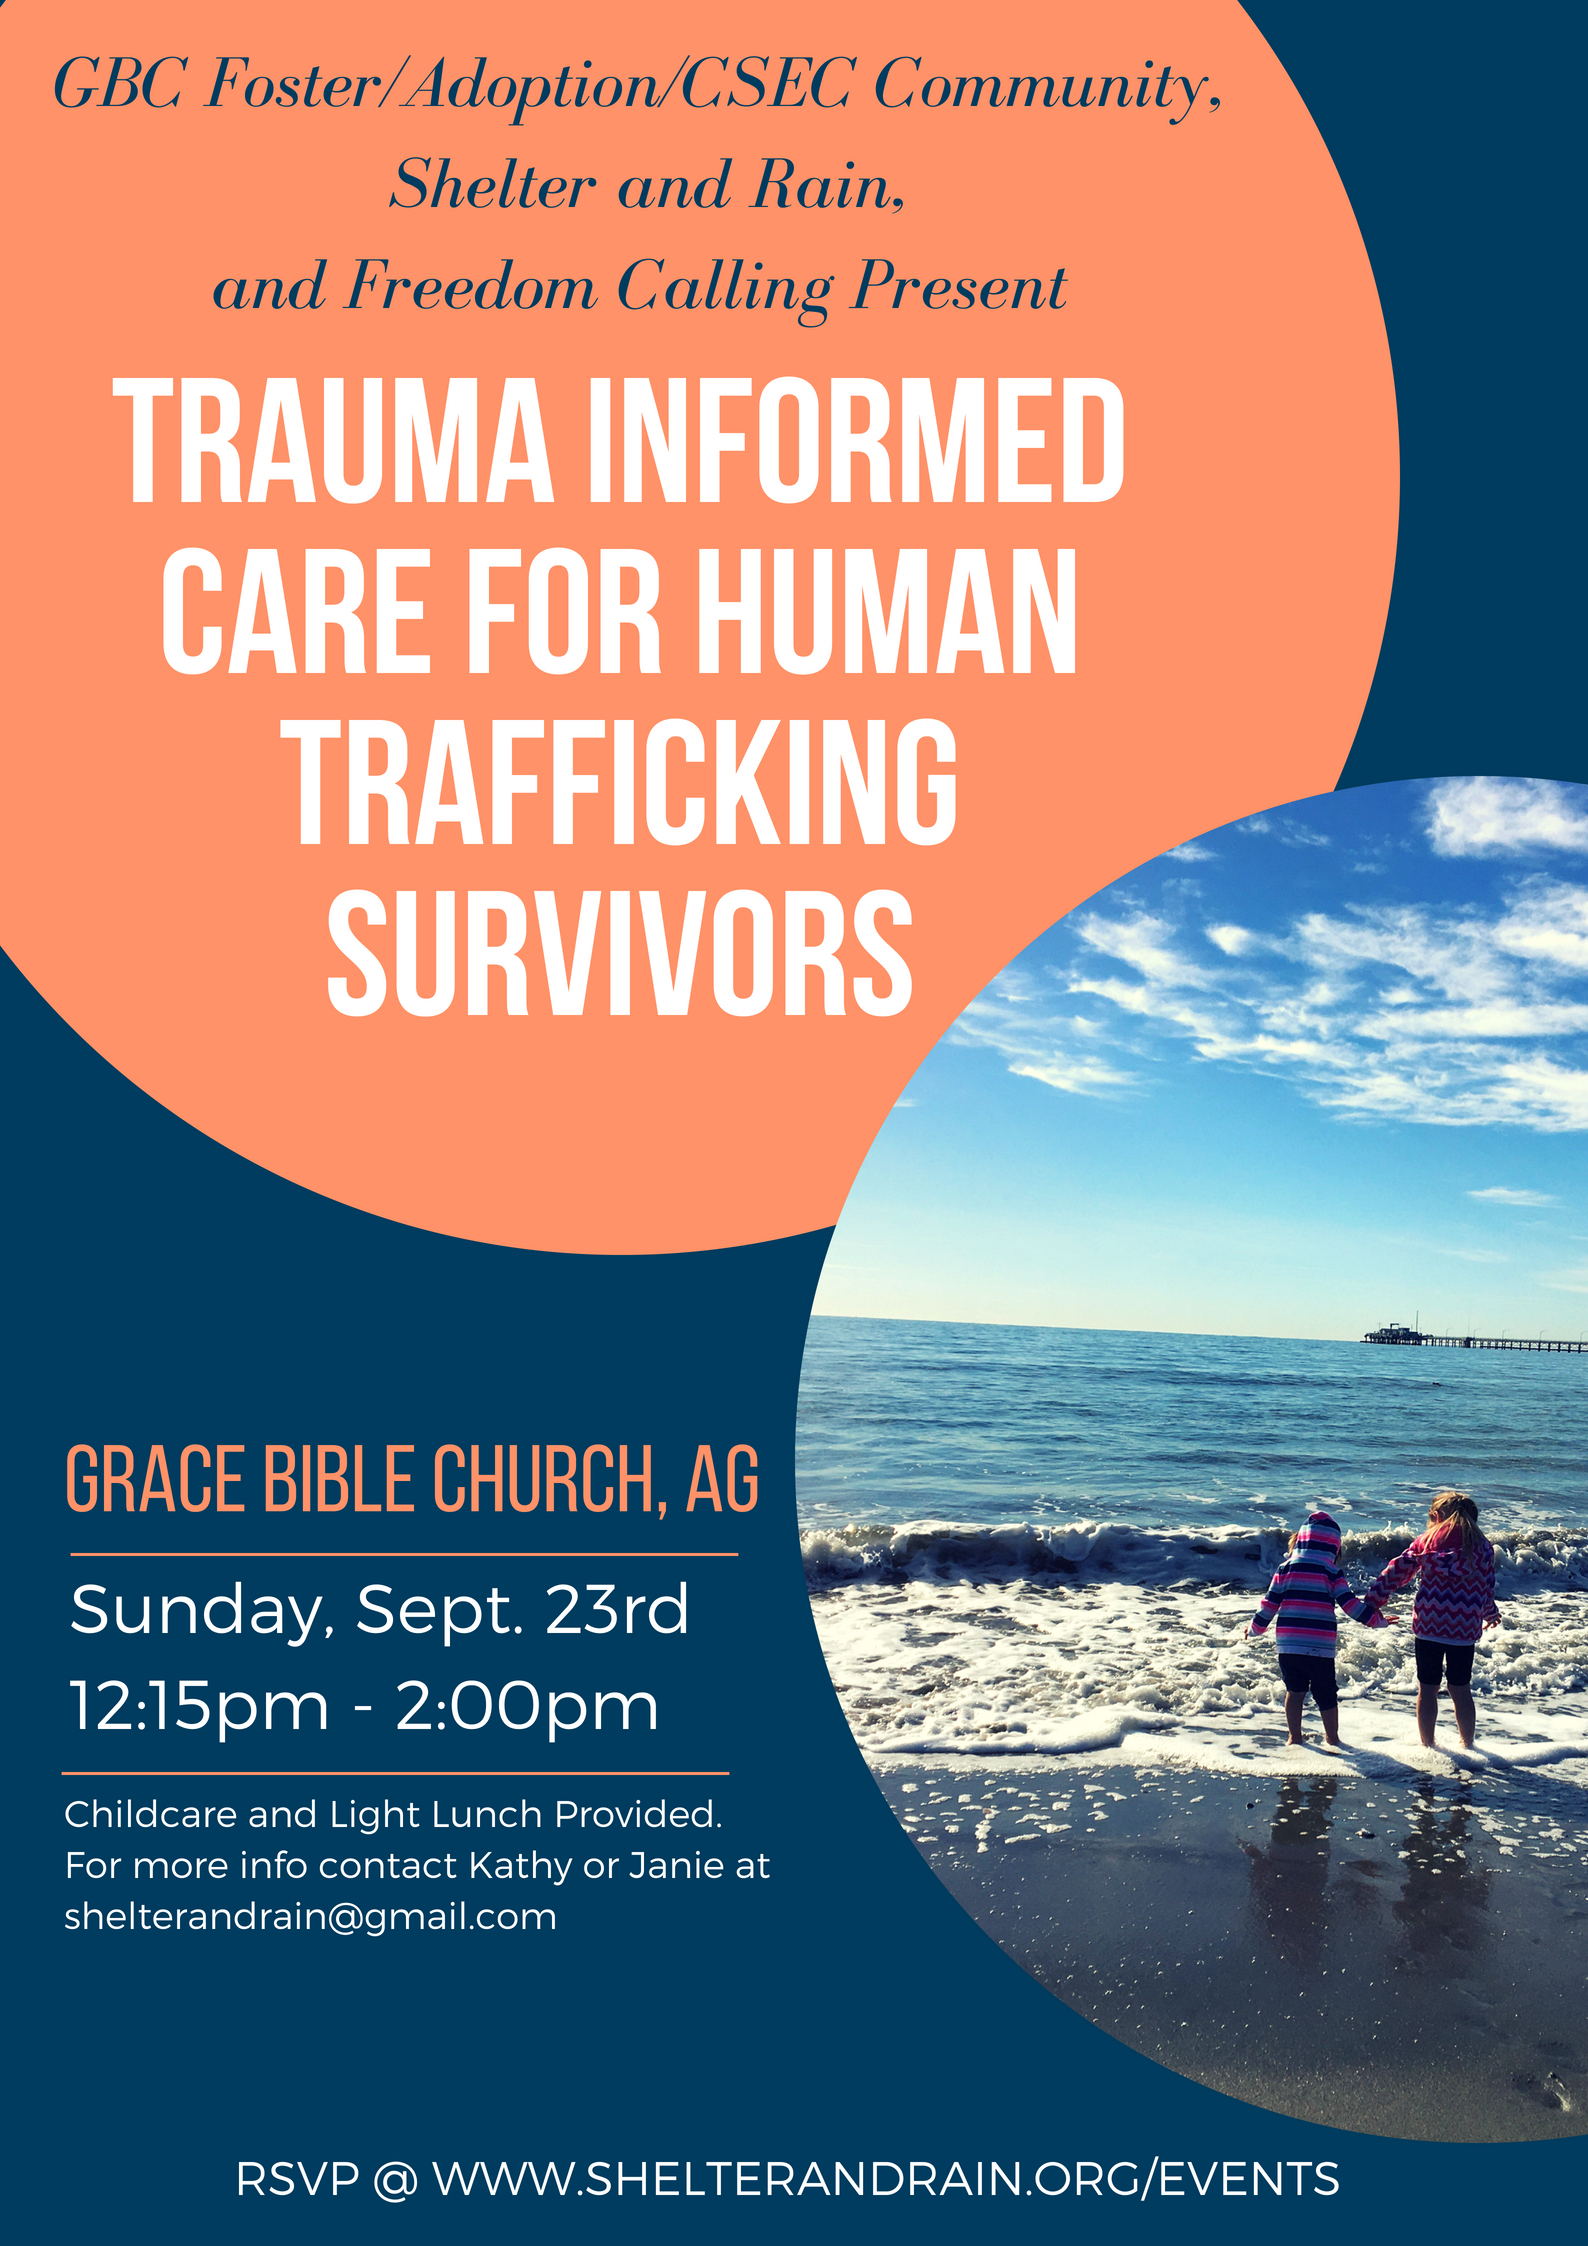 Trauma Informed Care for Human Trafficking Survivors